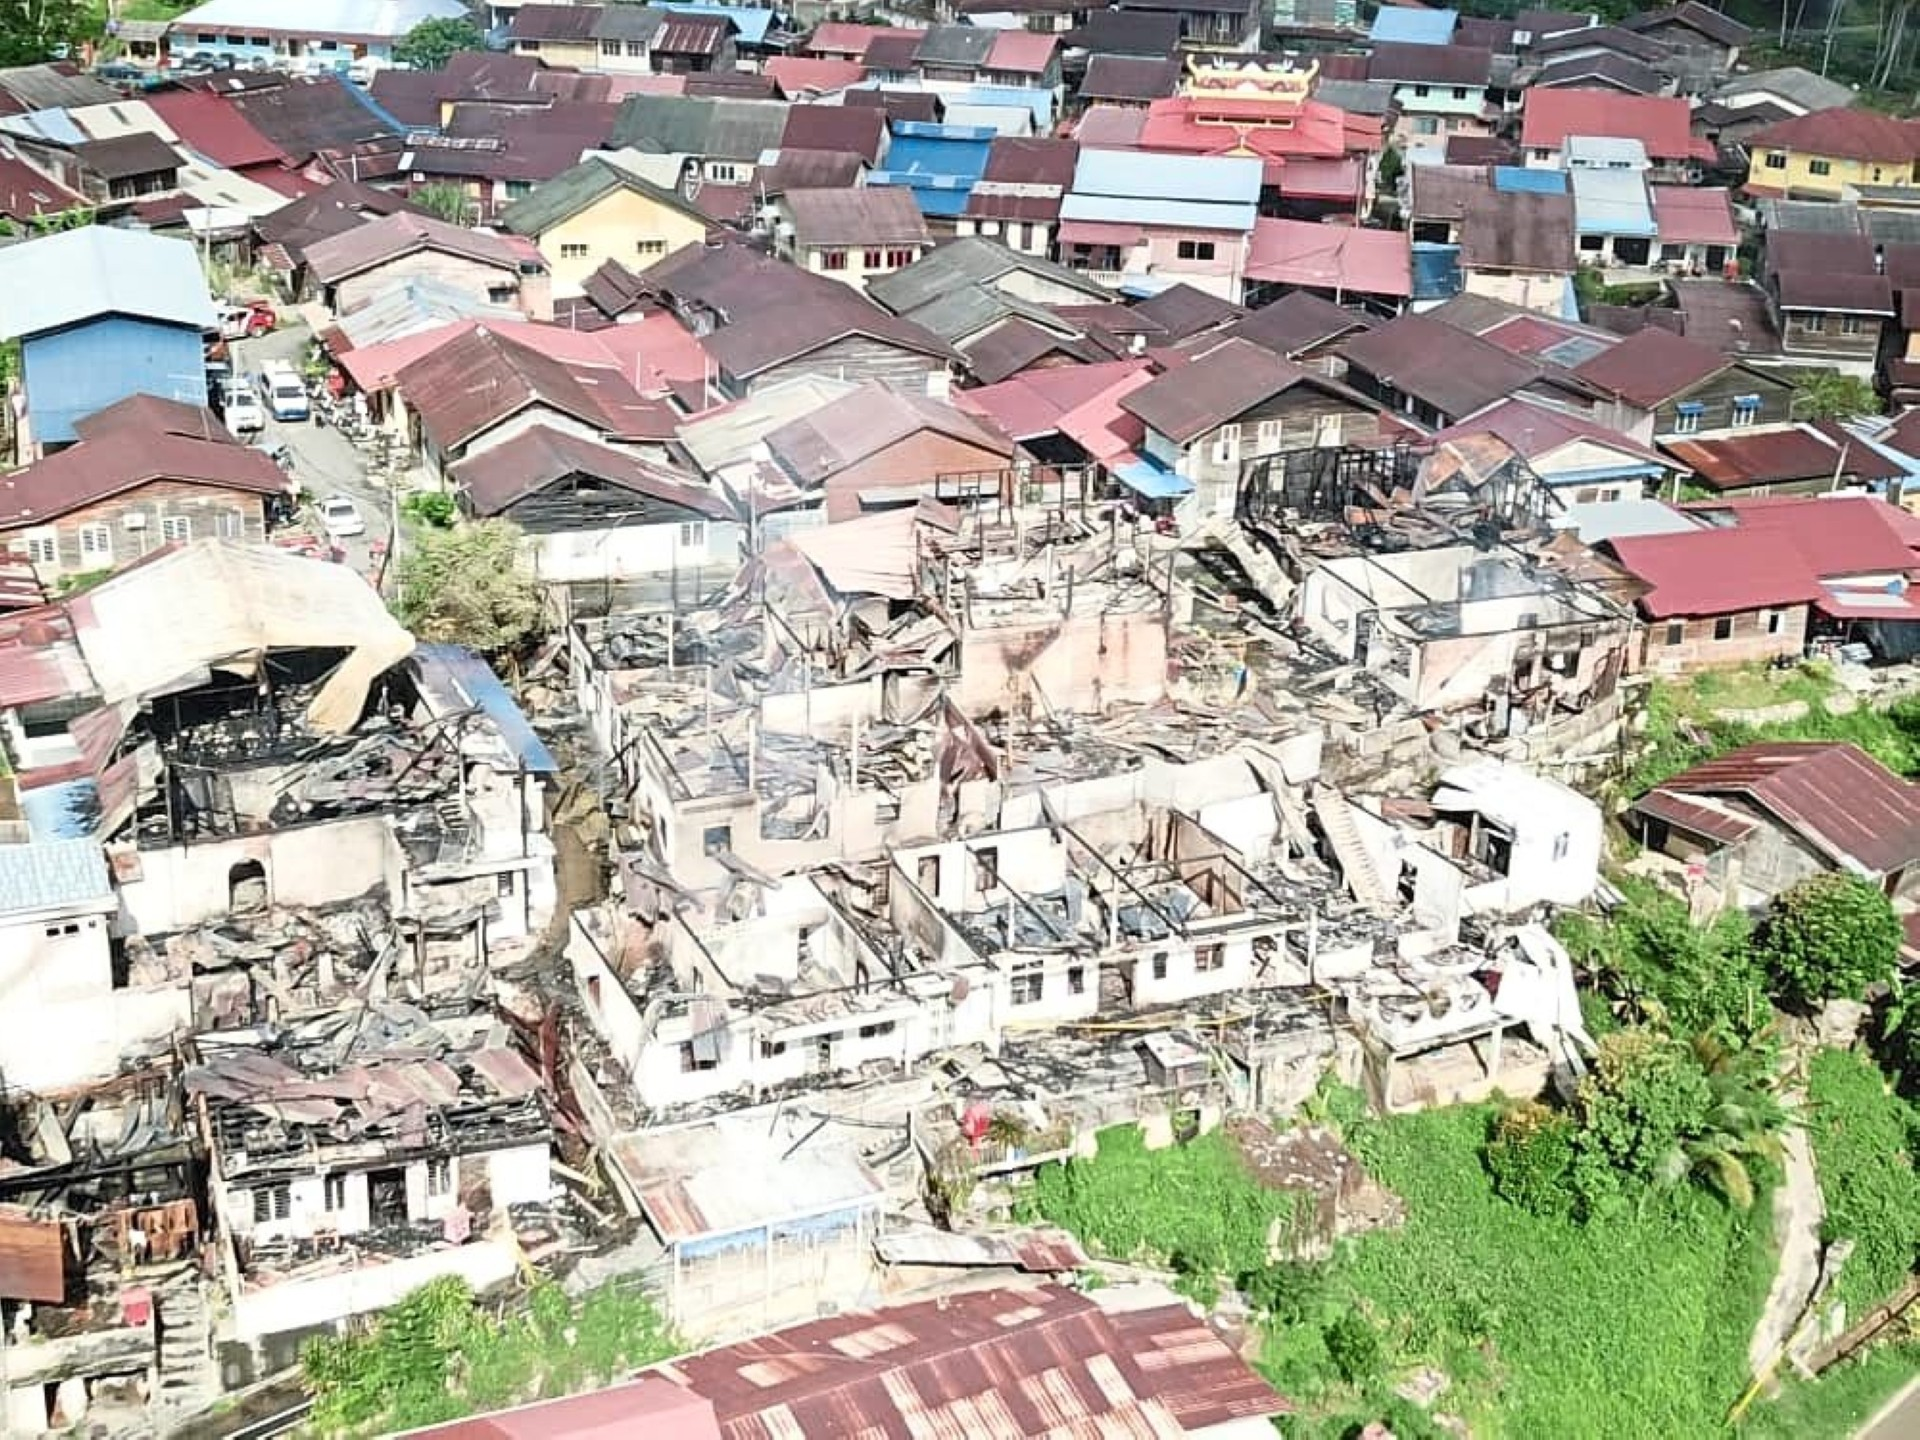 An aerial view of the houses destroyed in the fire.